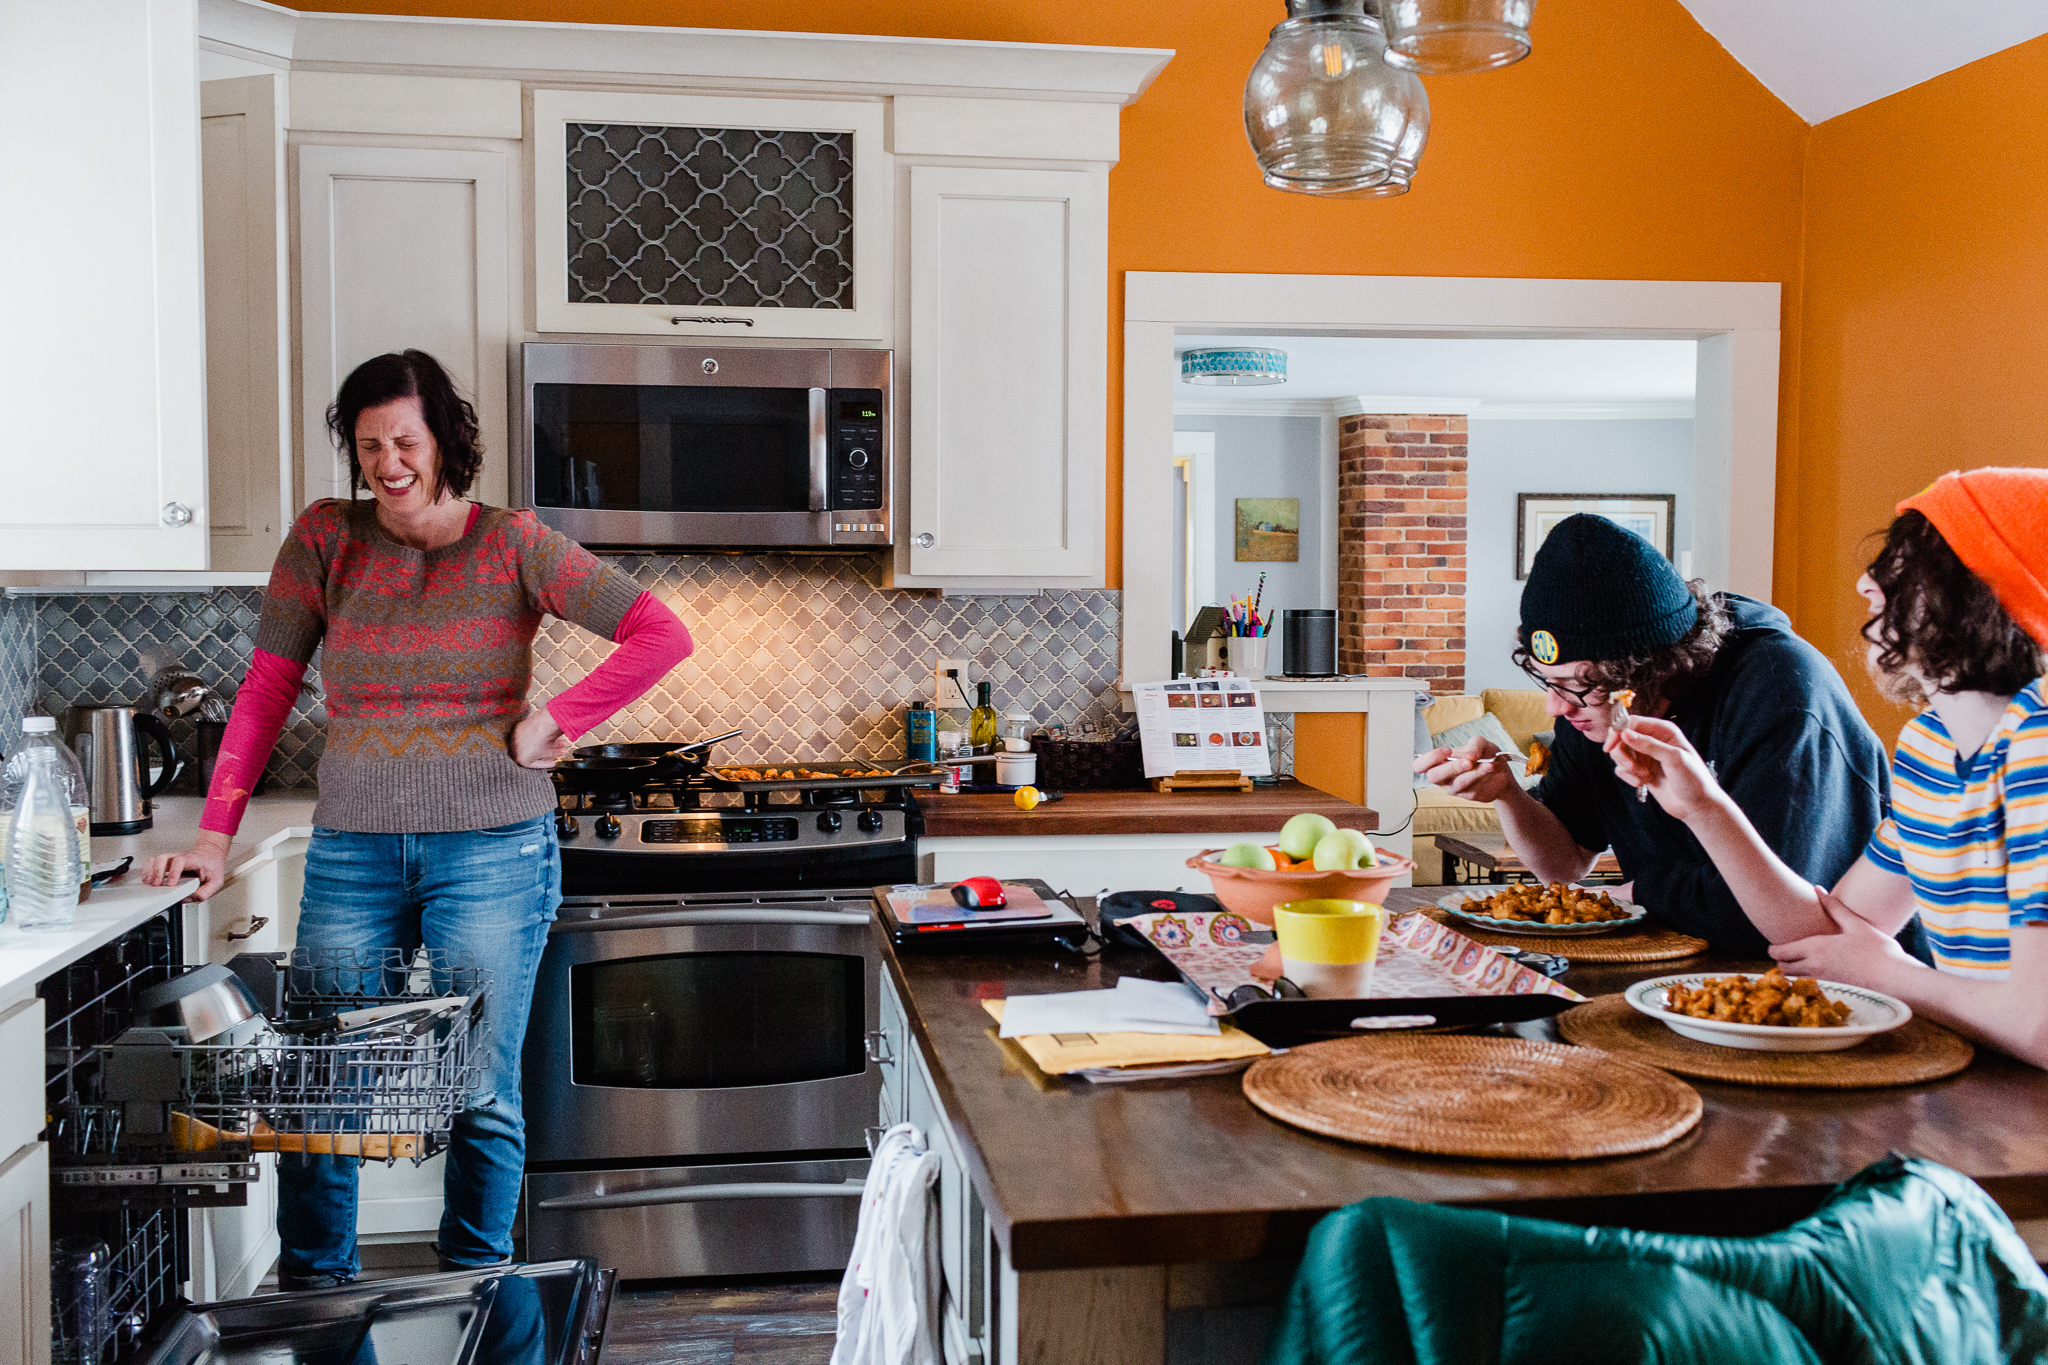 mom laughing in kitchen while two sons eat at counter